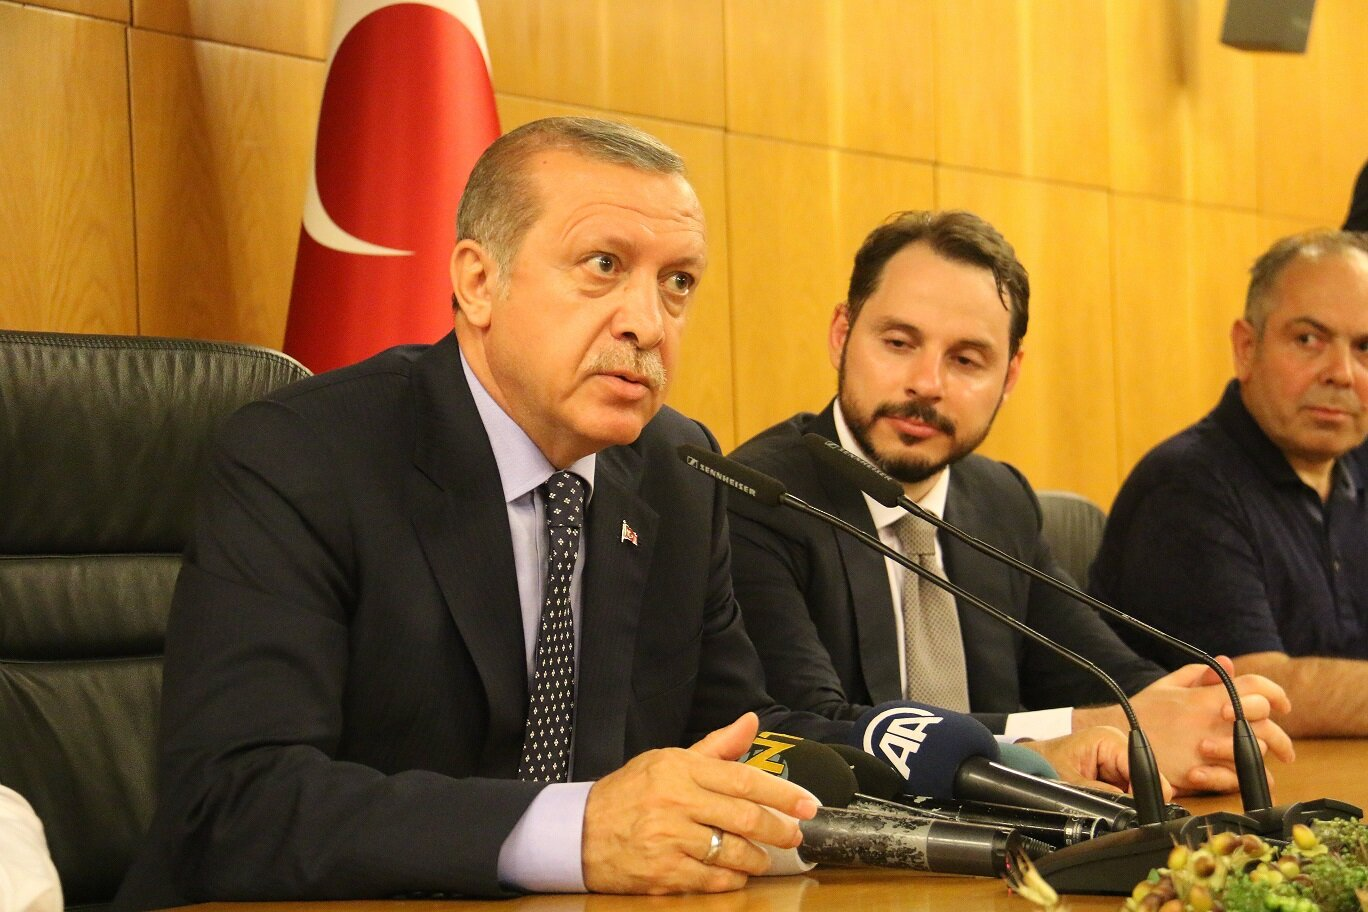 Erdoğan gave a speech at Atatürk Airport noting that F-16s threatened to intercept his private plane, and that the plotters were invaders and that the country would not surrender to them